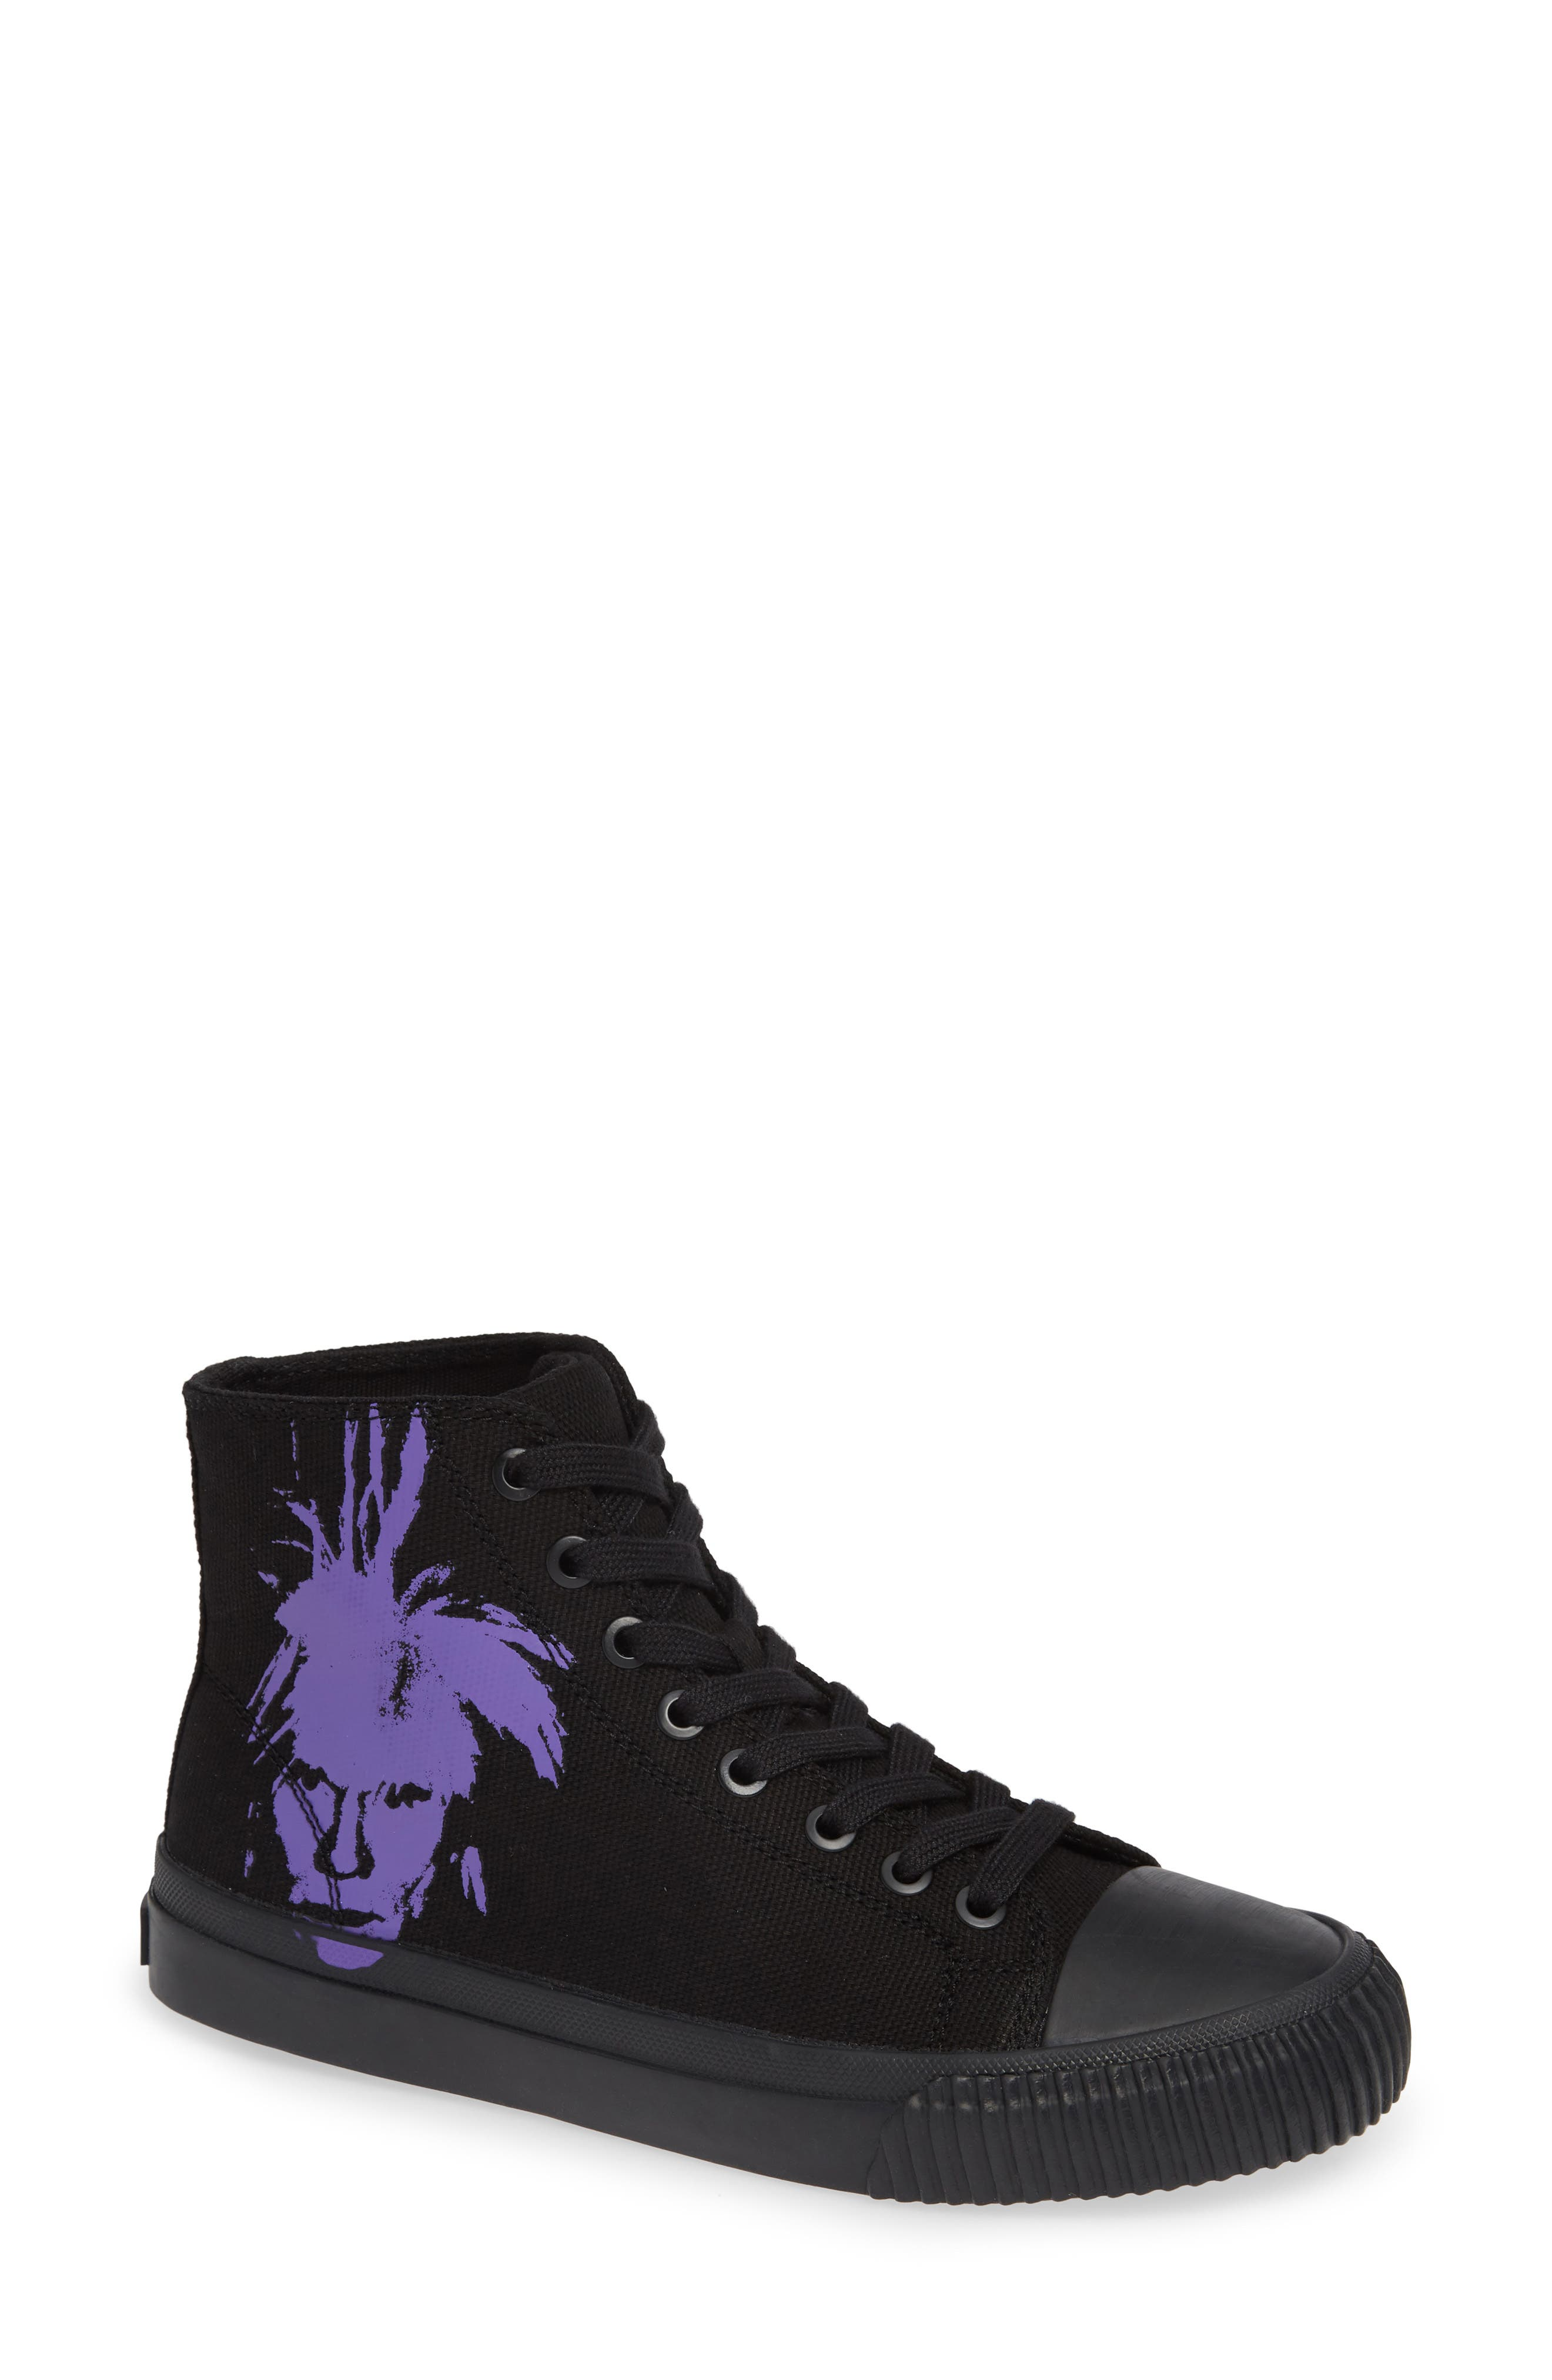 Iconica High Top Sneaker,                         Main,                         color, BLACK/ PURPLE